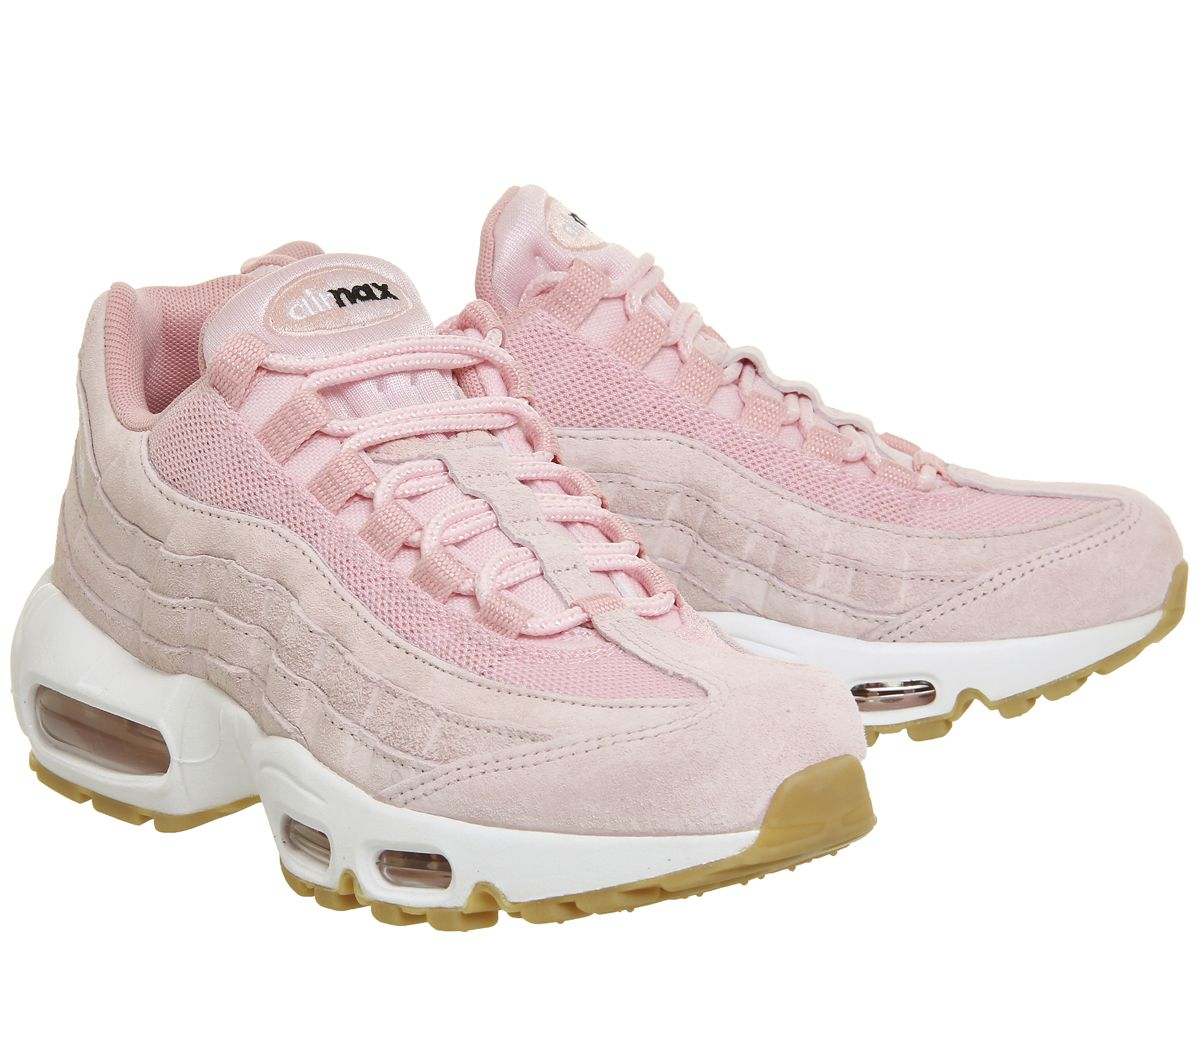 79a17c8f72 Nike Air Max 95 Prism Pink White Sheen - Hers trainers